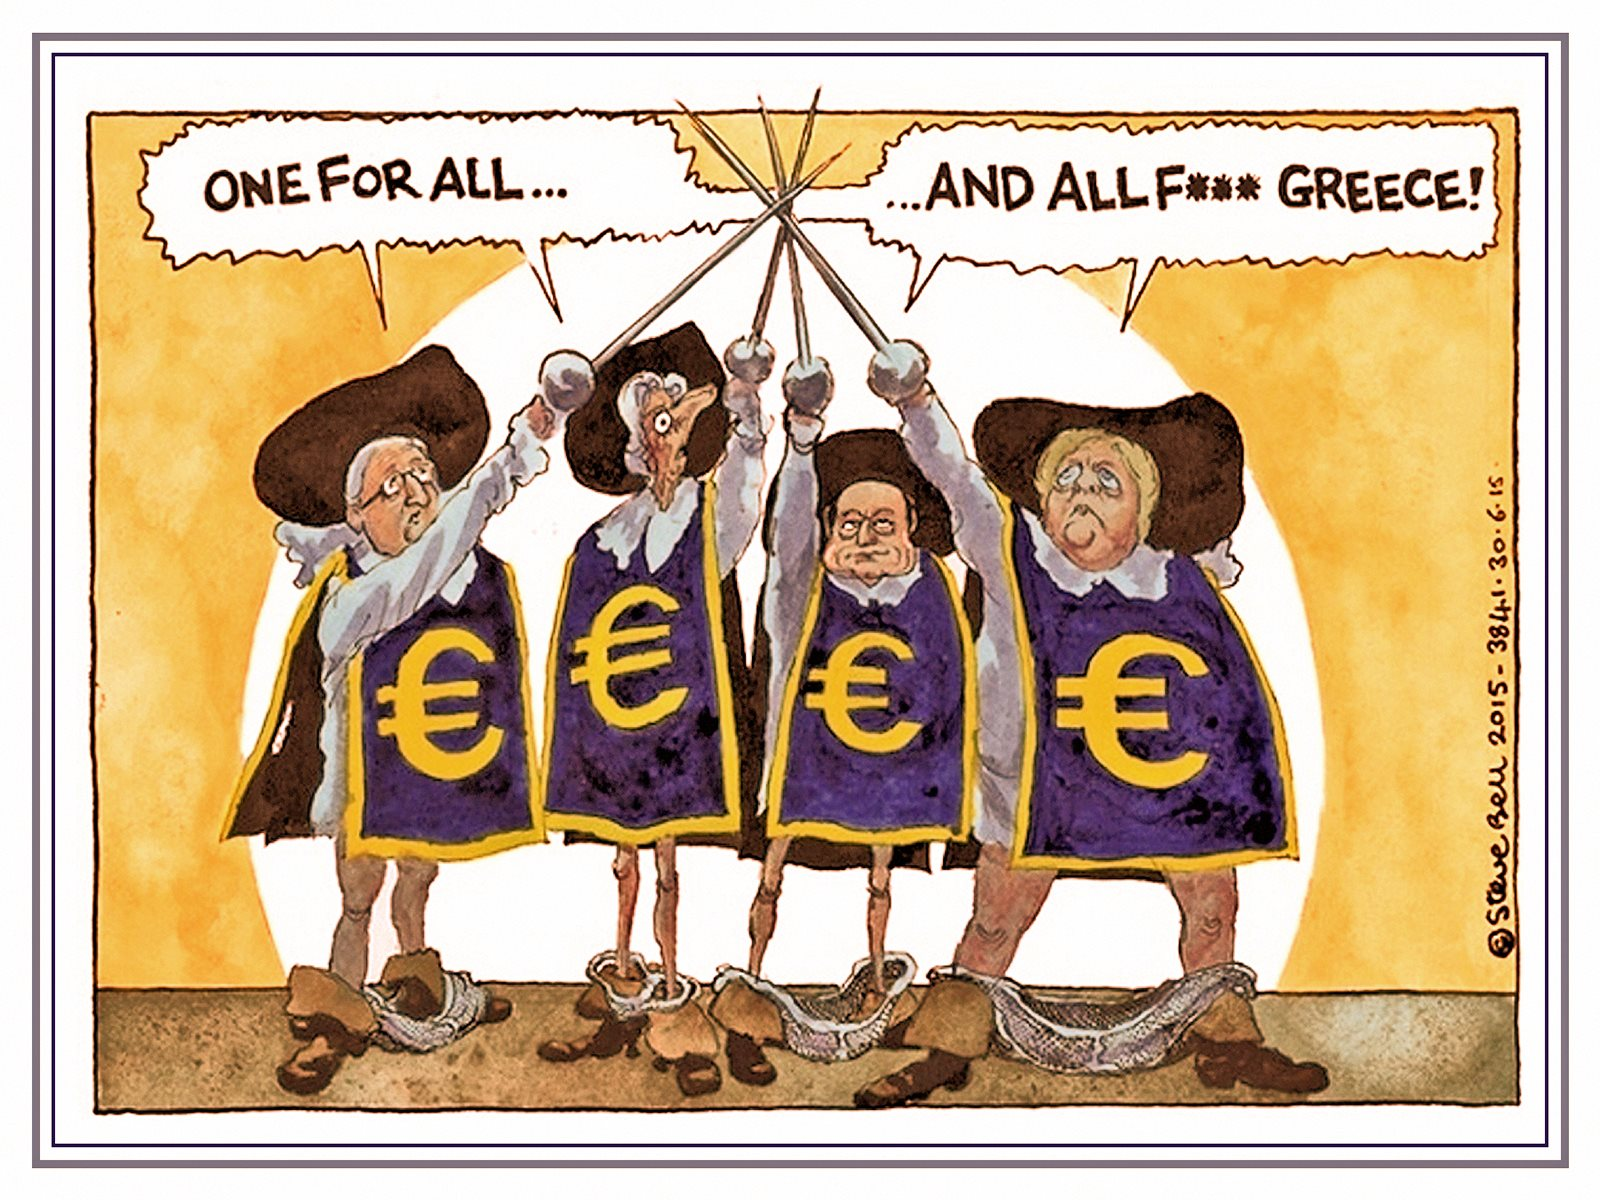 00 Steve Bell. One for All.. And F Greece! 050715